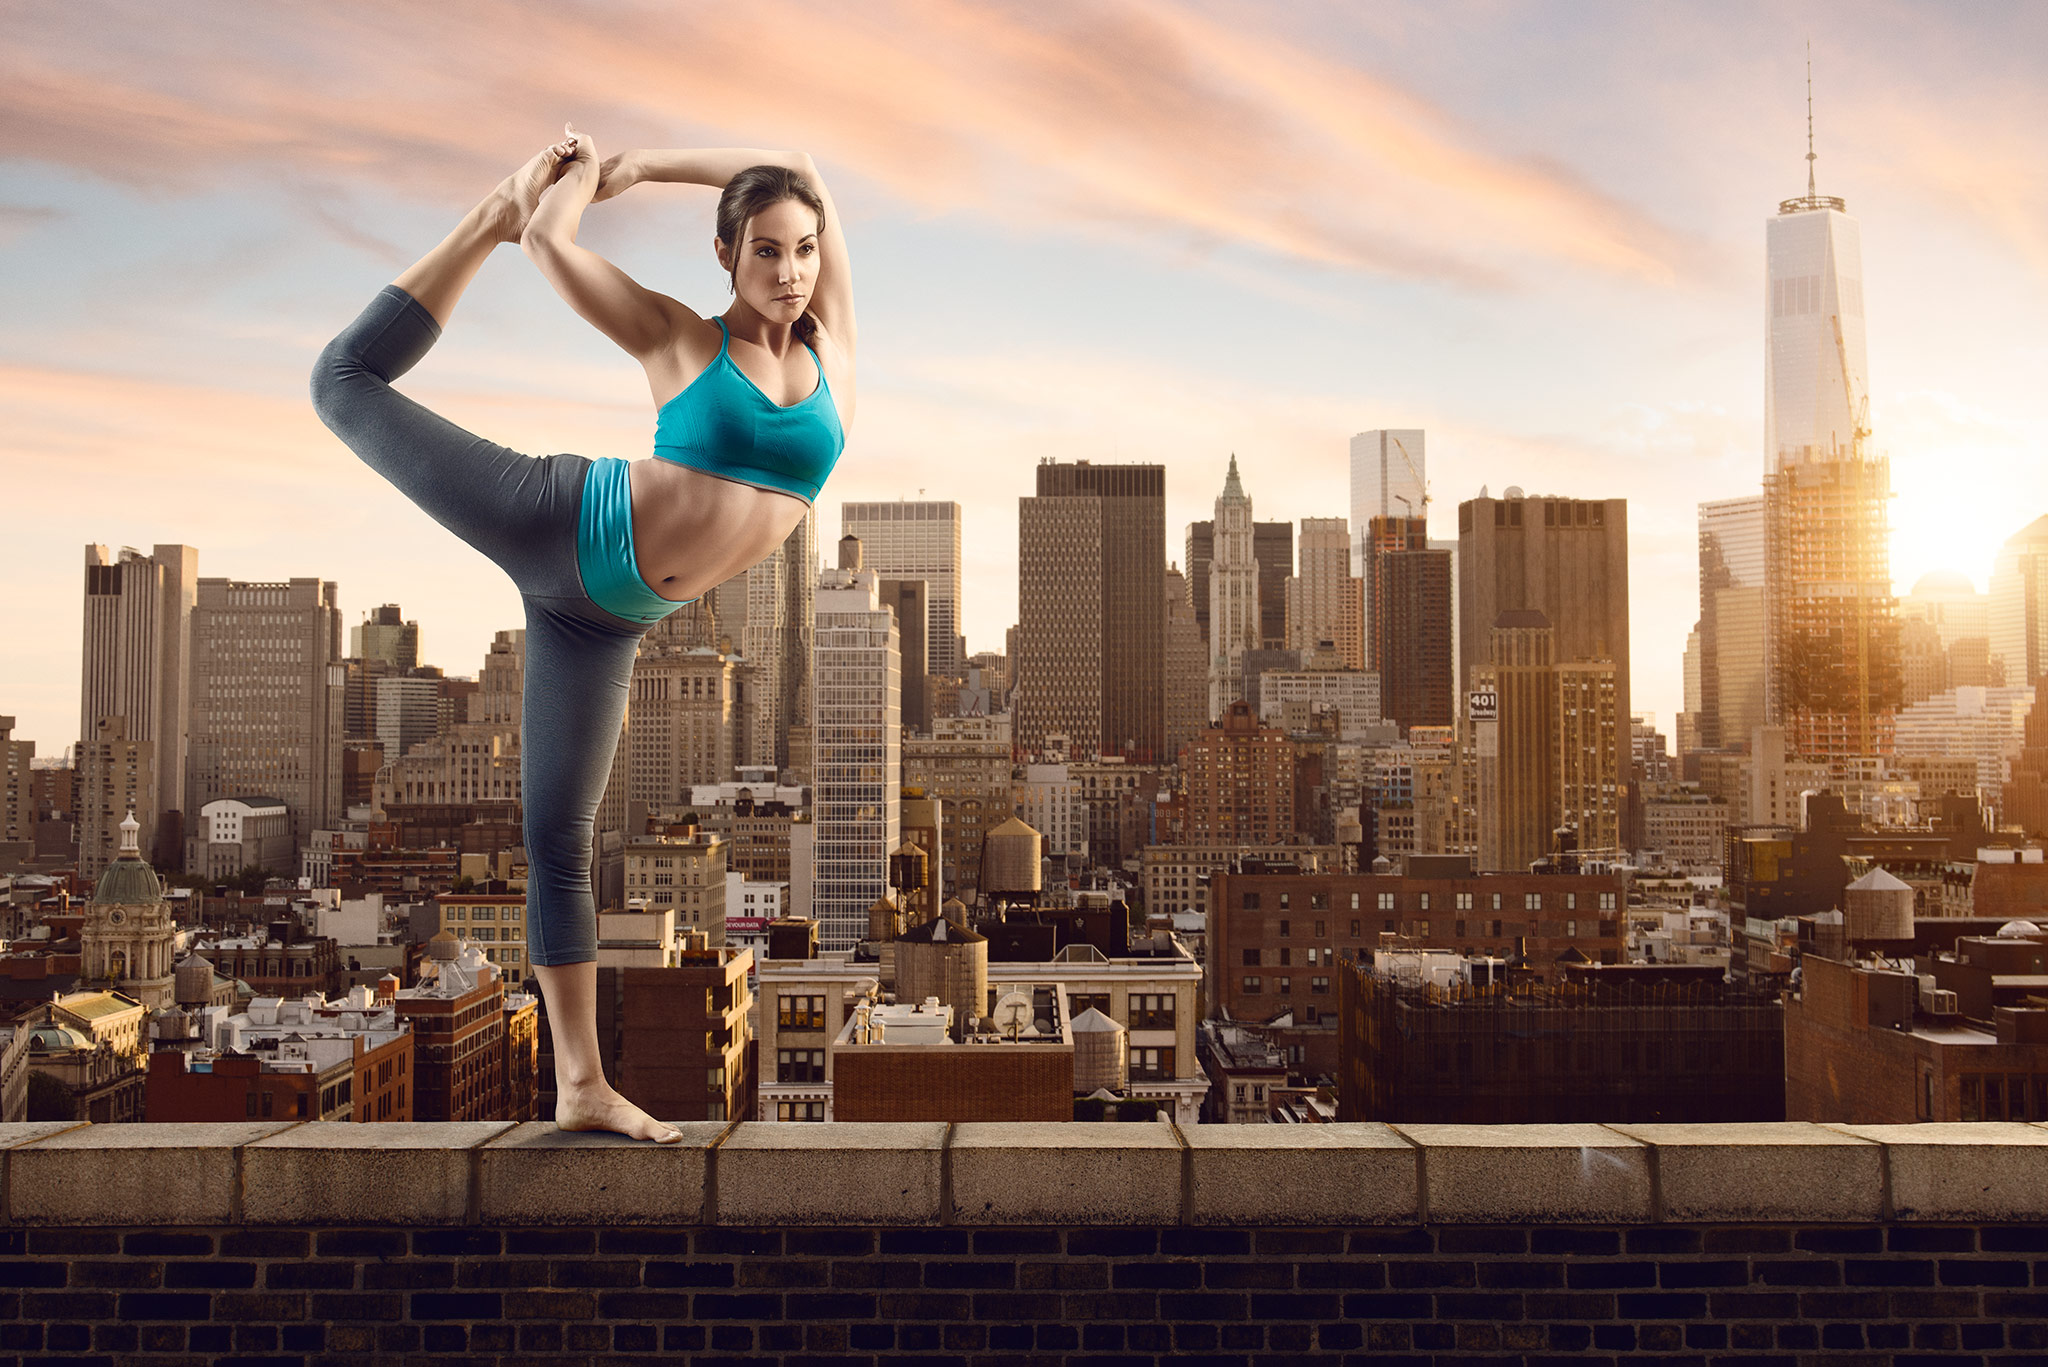 Woman Stretching on Ledge in City | Zach Ancell Photography